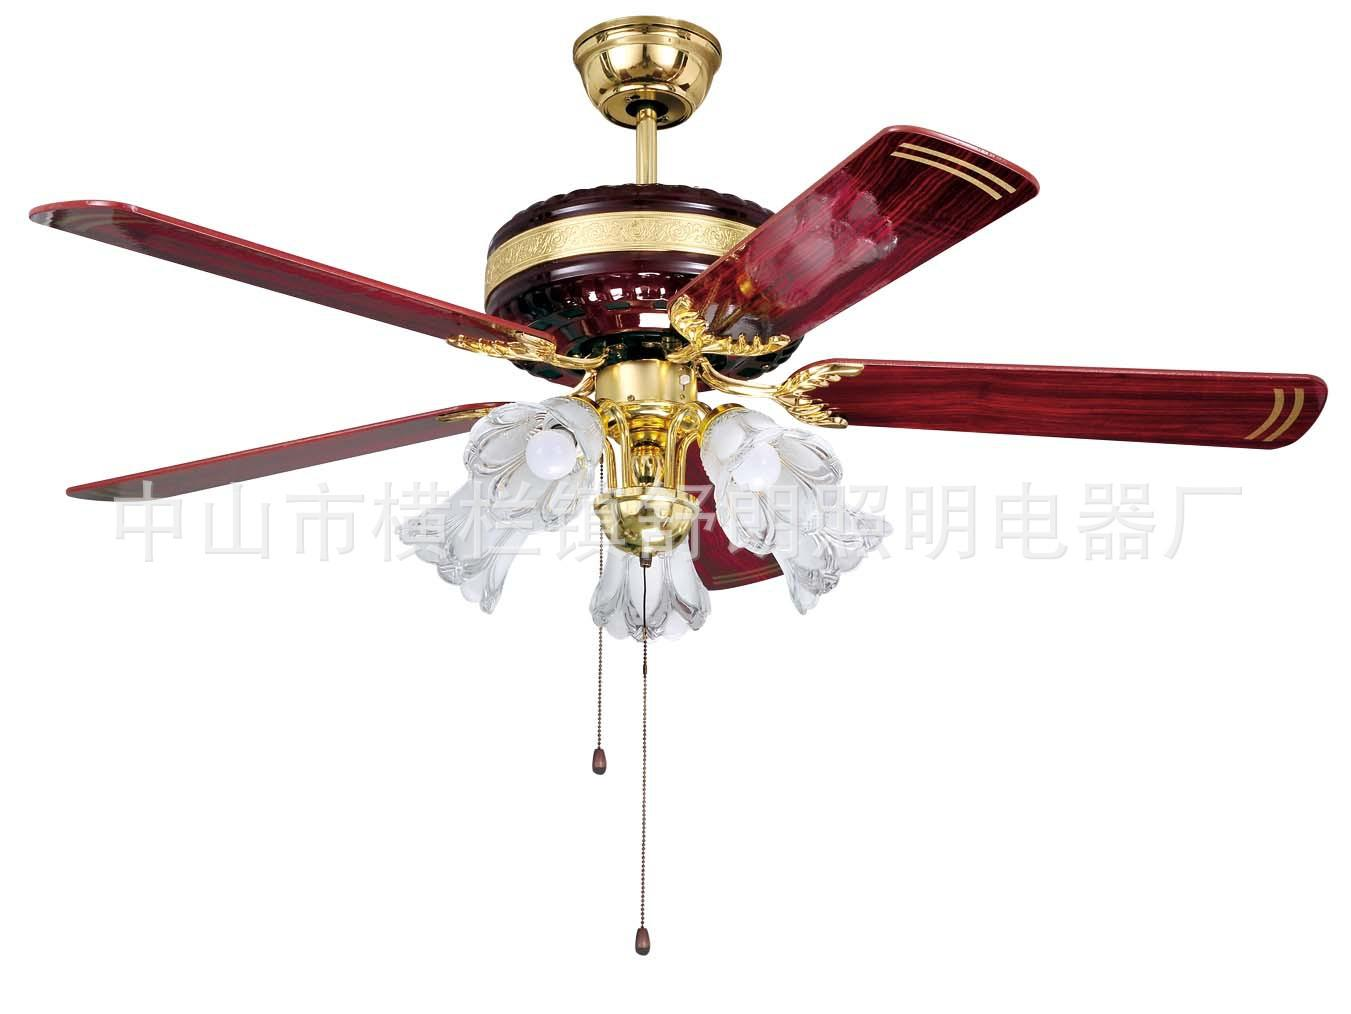 2017 special fan lights wholesale red wood jin xiqing restaurant